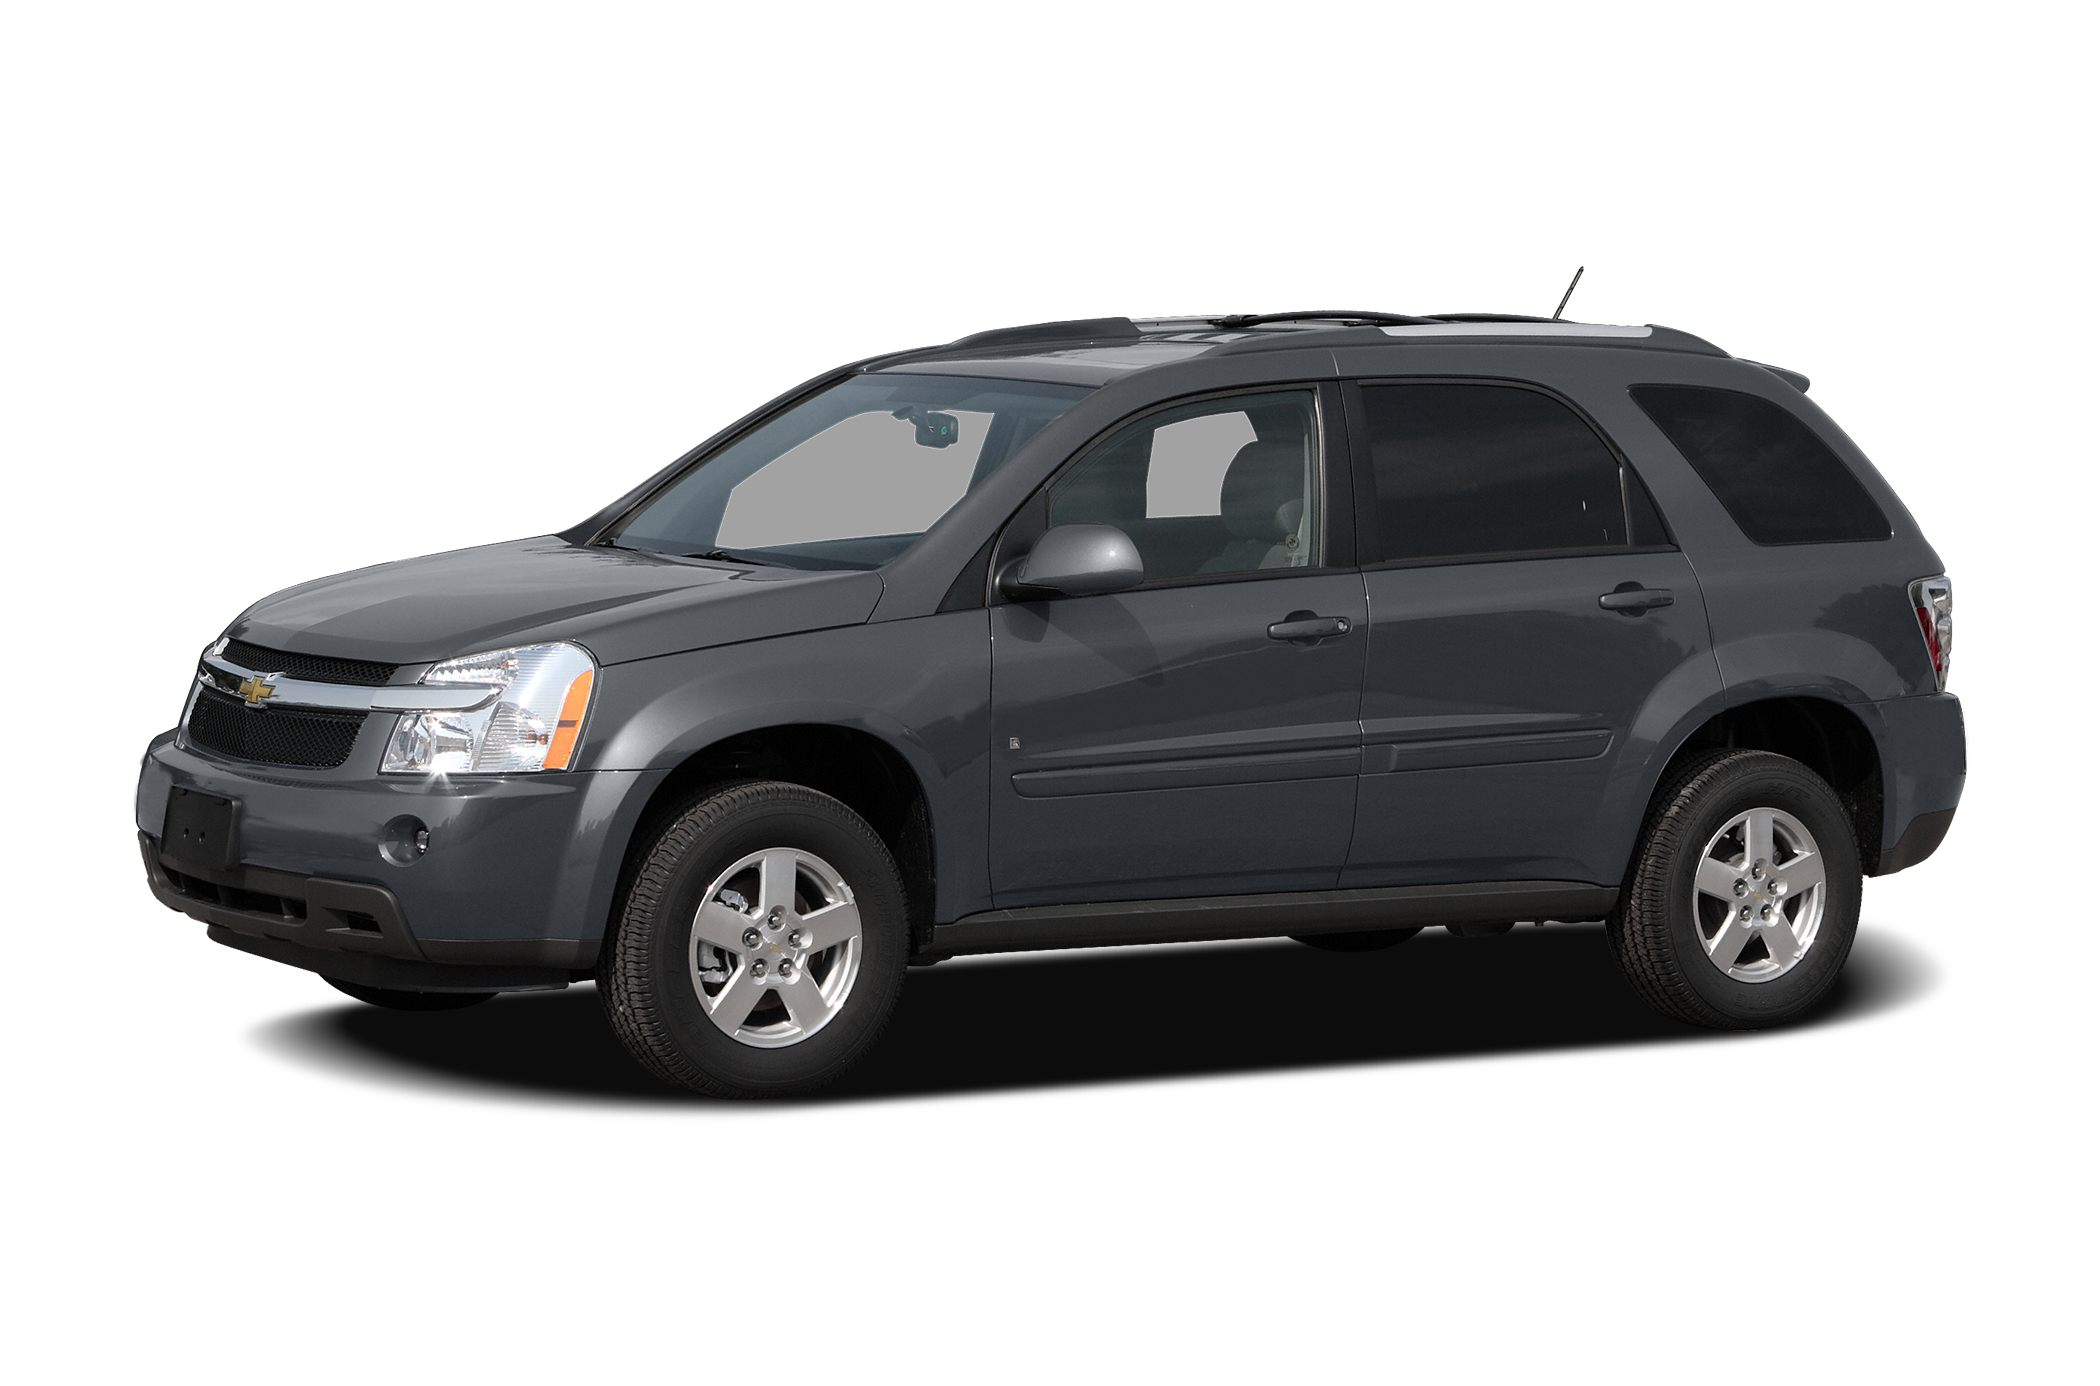 2008 Chevrolet Equinox LT SUV for sale in Hannibal for $11,595 with 78,050 miles.